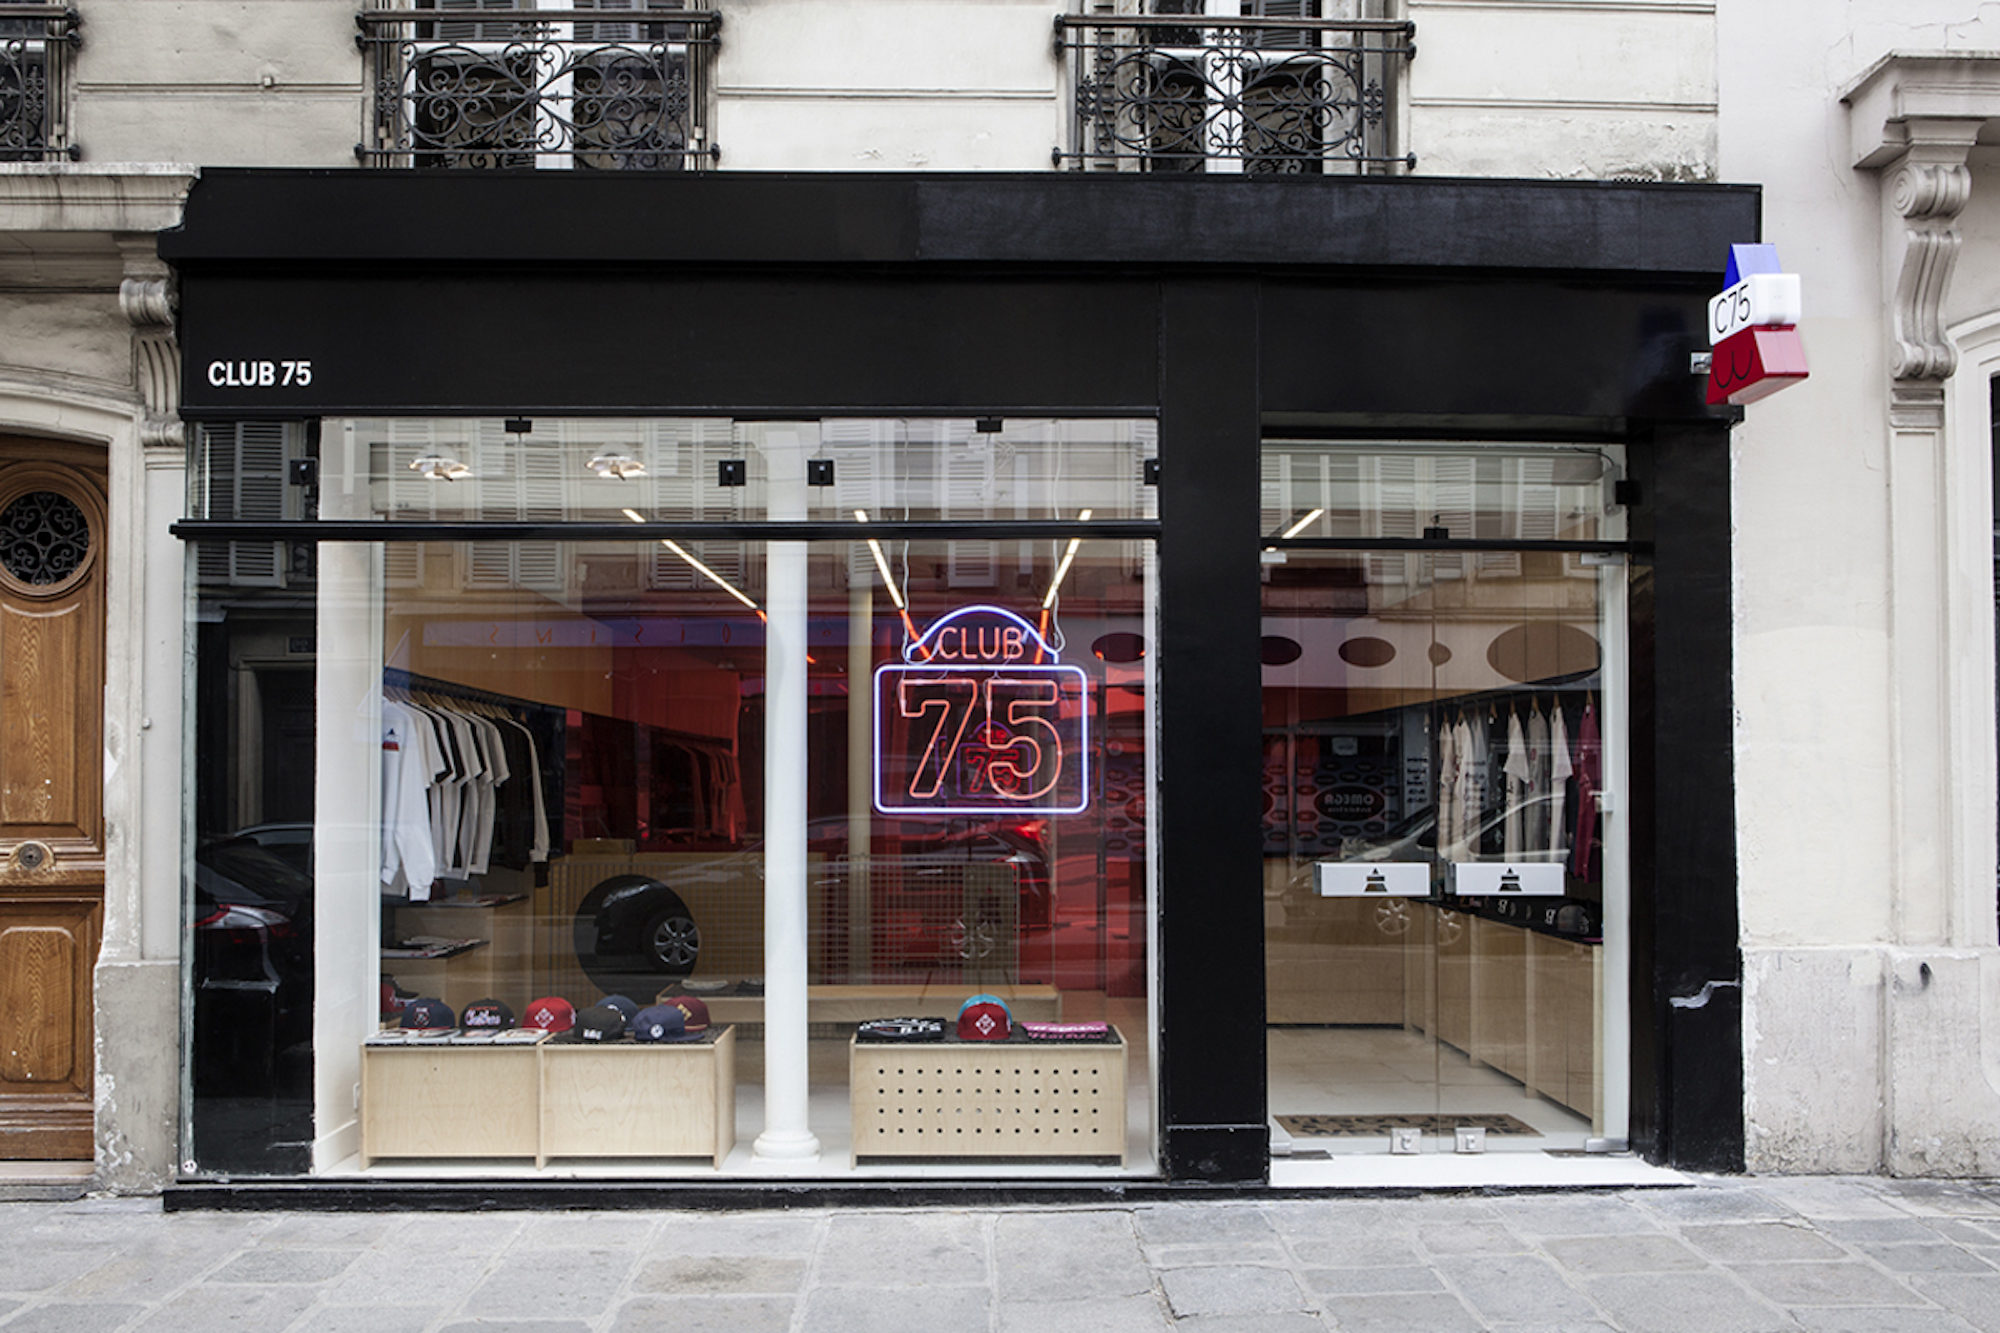 The window of Club 75 with a neon sign of the name of the store in Paris.